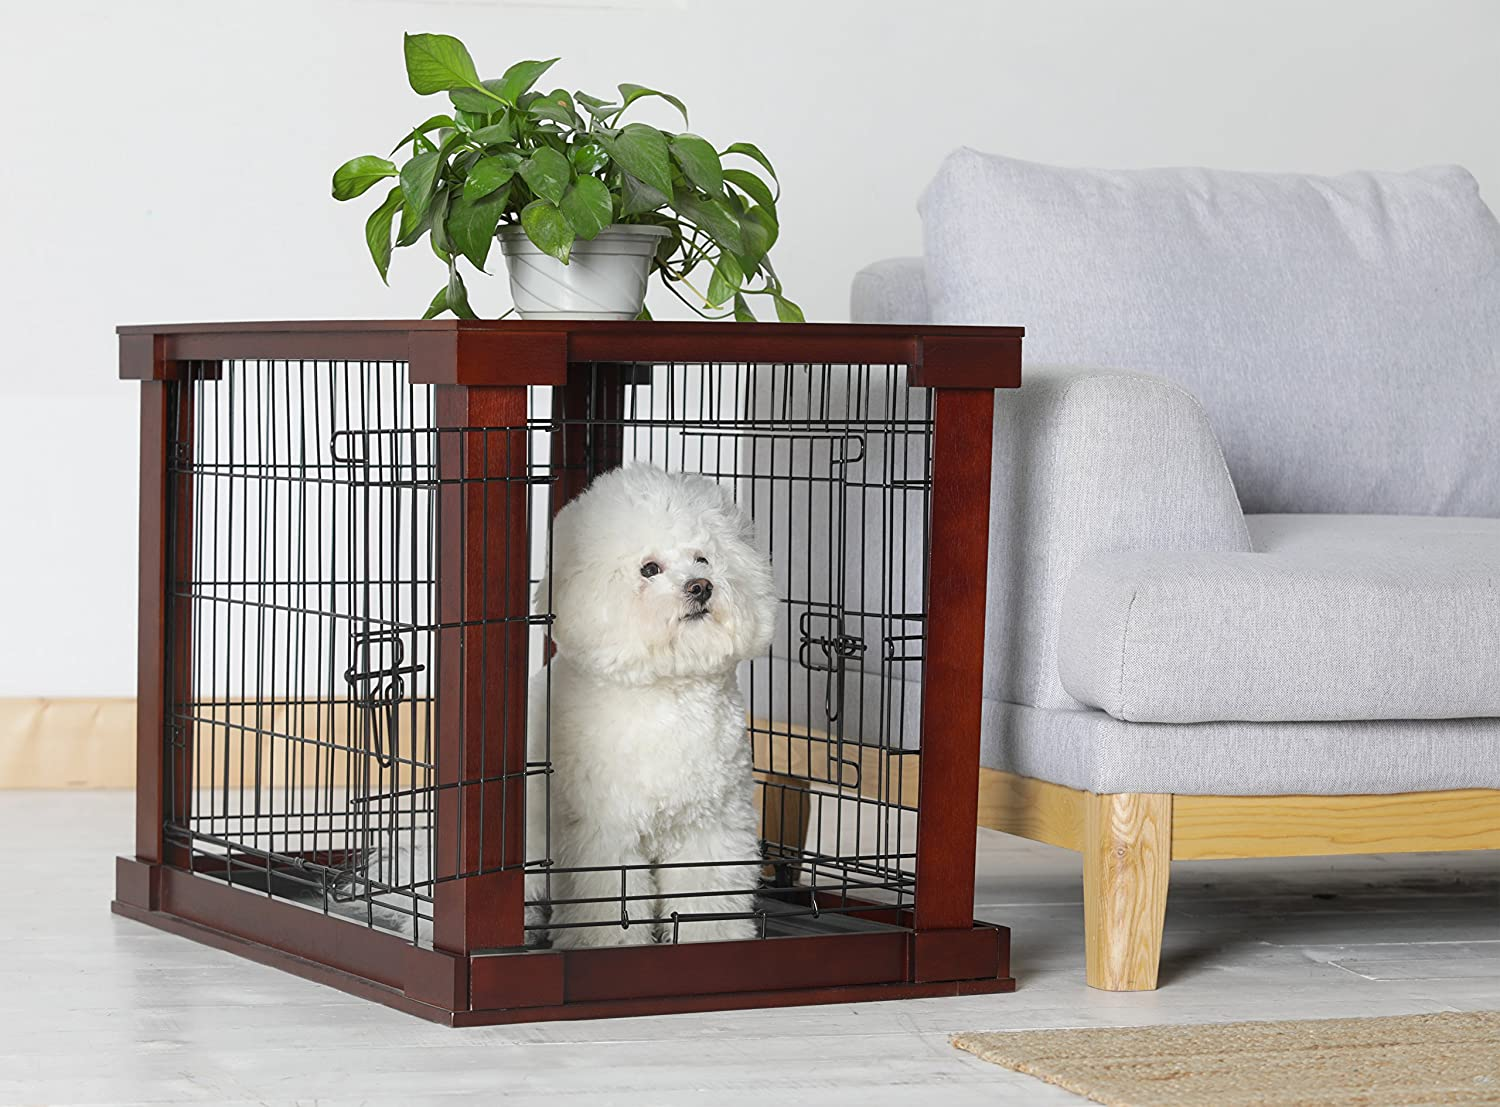 Amazon.com : Large cage with crate cover : Pet Crates : Pet Supplies